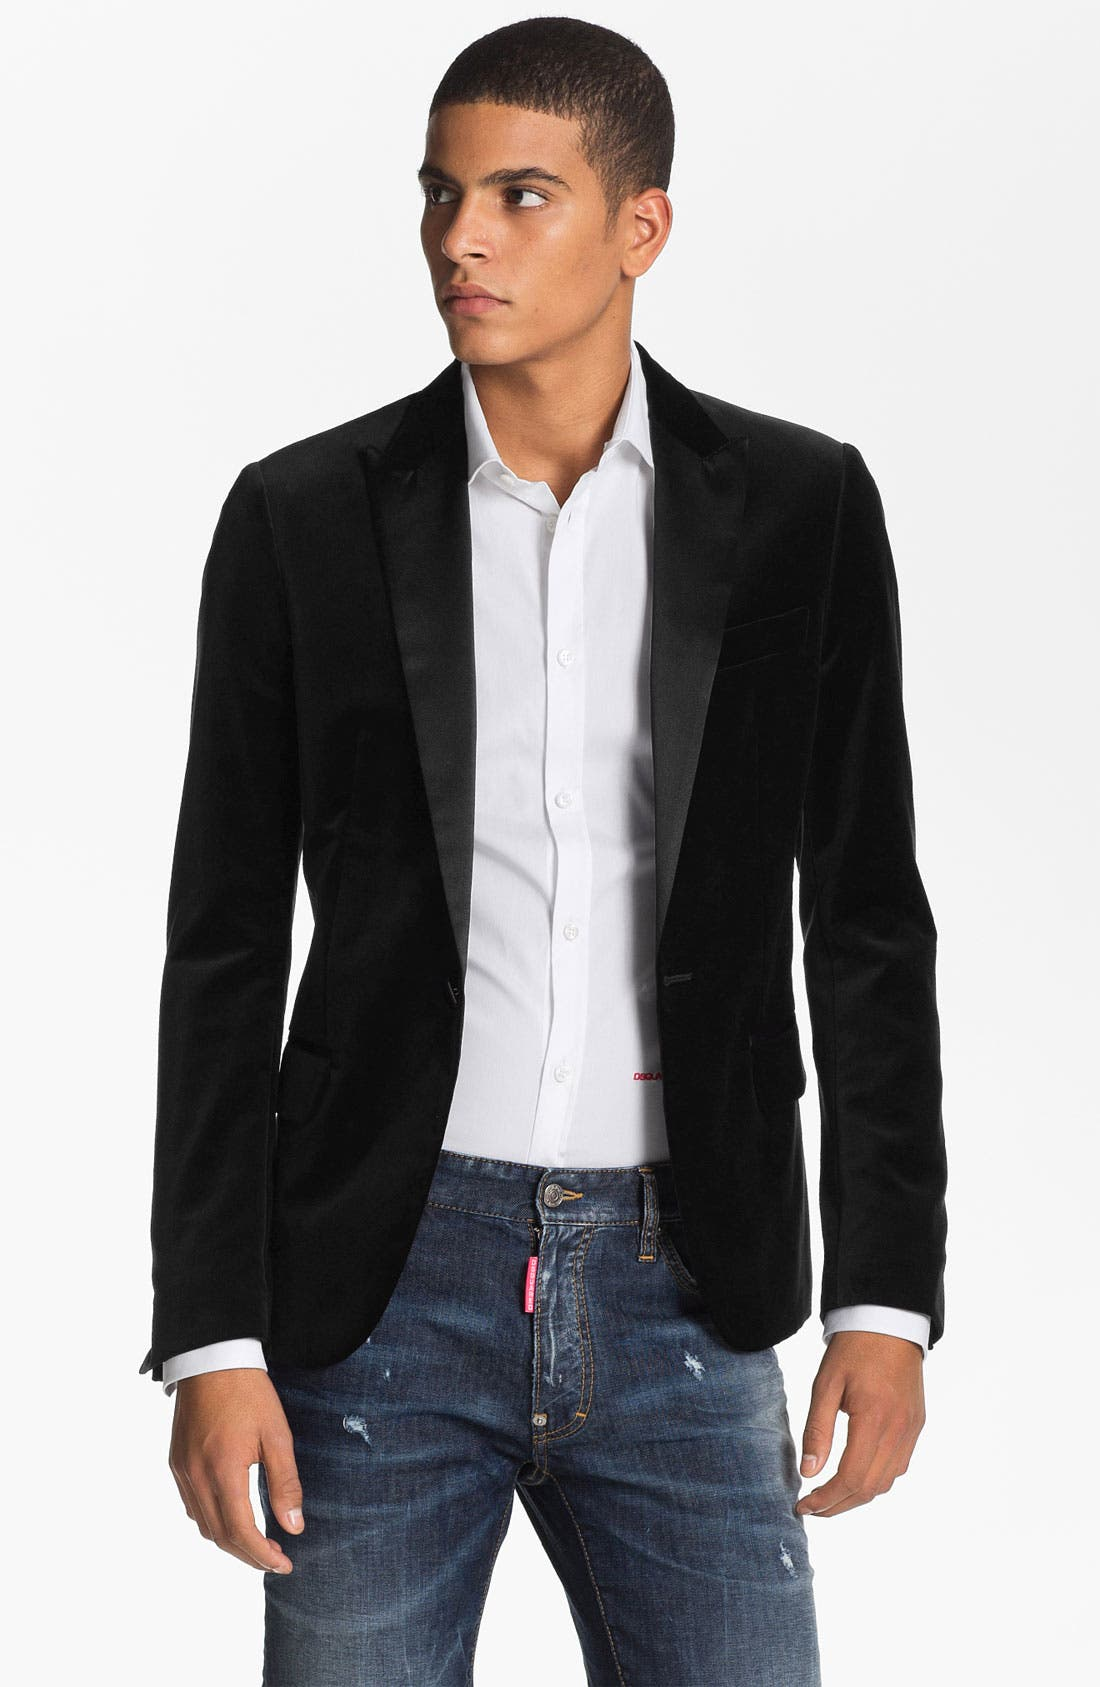 Alternate Image 1 Selected - Dsquared2 One Button Tuxedo Jacket